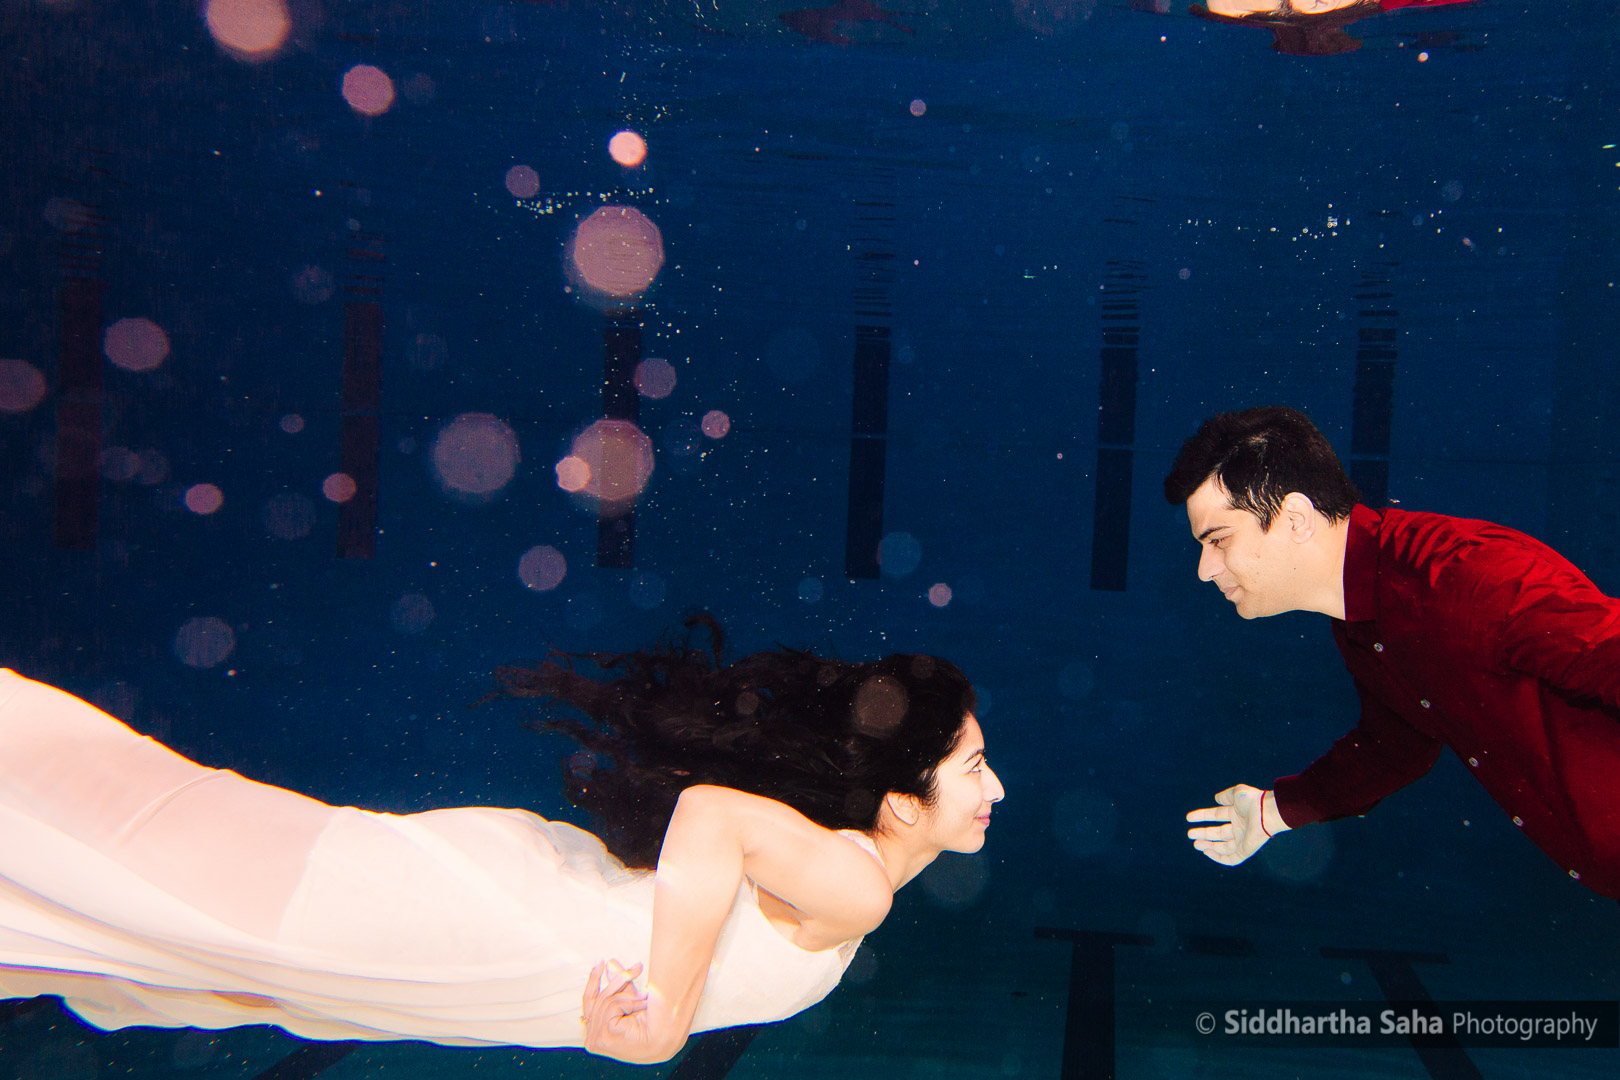 2015-04-12 - Saloni Vaibhav Underwater Shoot - _O5C4522-08